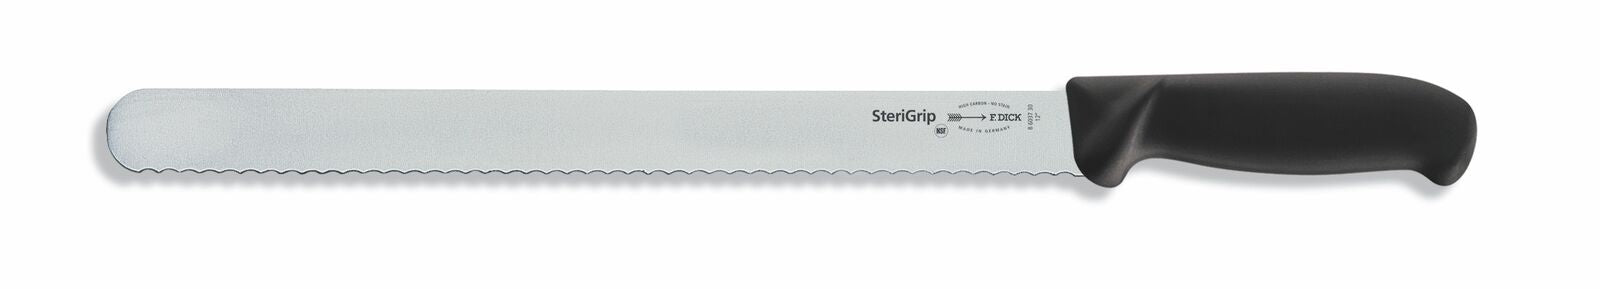 "F. Dick (8603730) 12"" Slicer Serrated Edge, SteriGrip-cityfoodequipment.com"